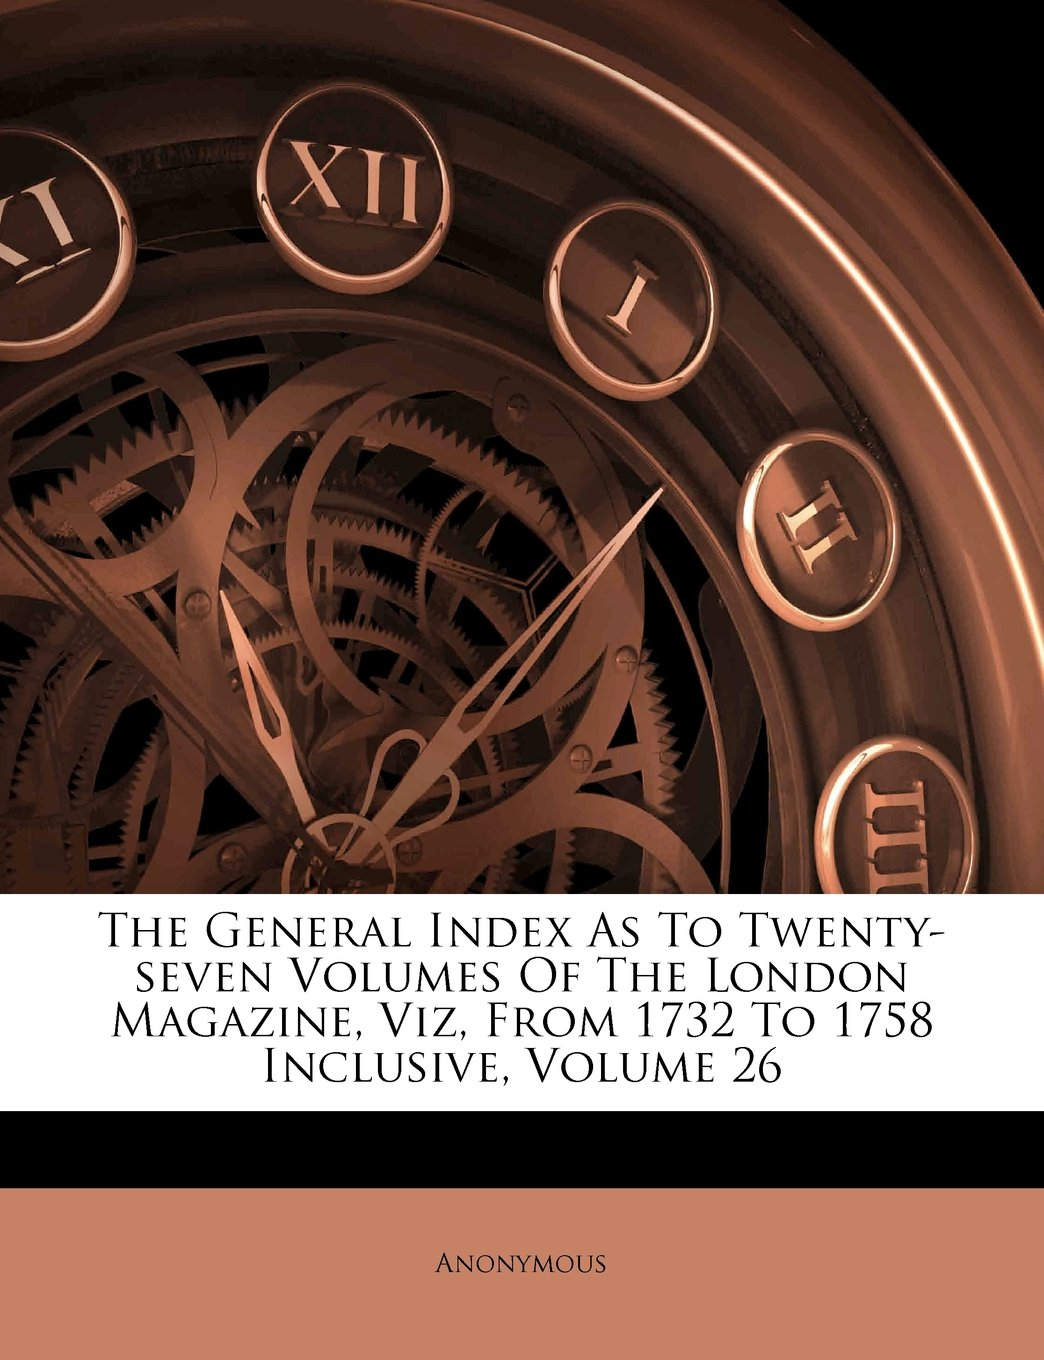 The General Index As To Twenty-seven Volumes Of The London Magazine, Viz, From 1732 To 1758 Inclusive, Volume 26 pdf